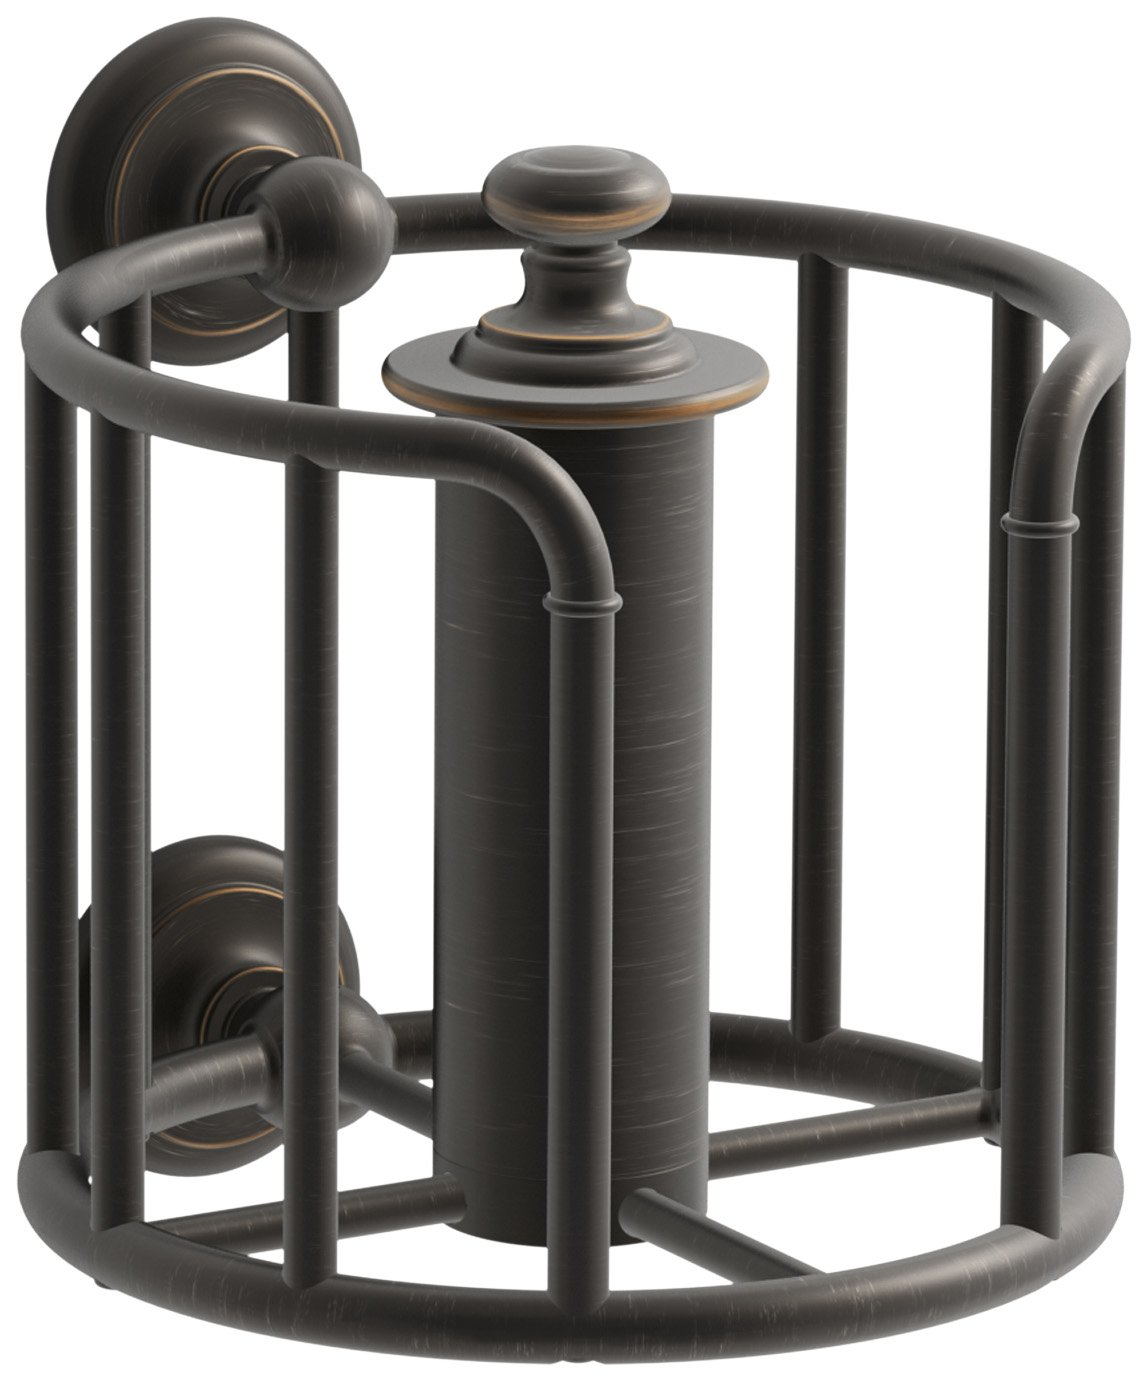 oil rubbed bronze bathroom accessories. KOHLER K-72576-2BZ Artifacts Toilet Tissue Carriage, Oil-Rubbed Bronze - Paper Holders Amazon.com Oil Rubbed Bathroom Accessories B